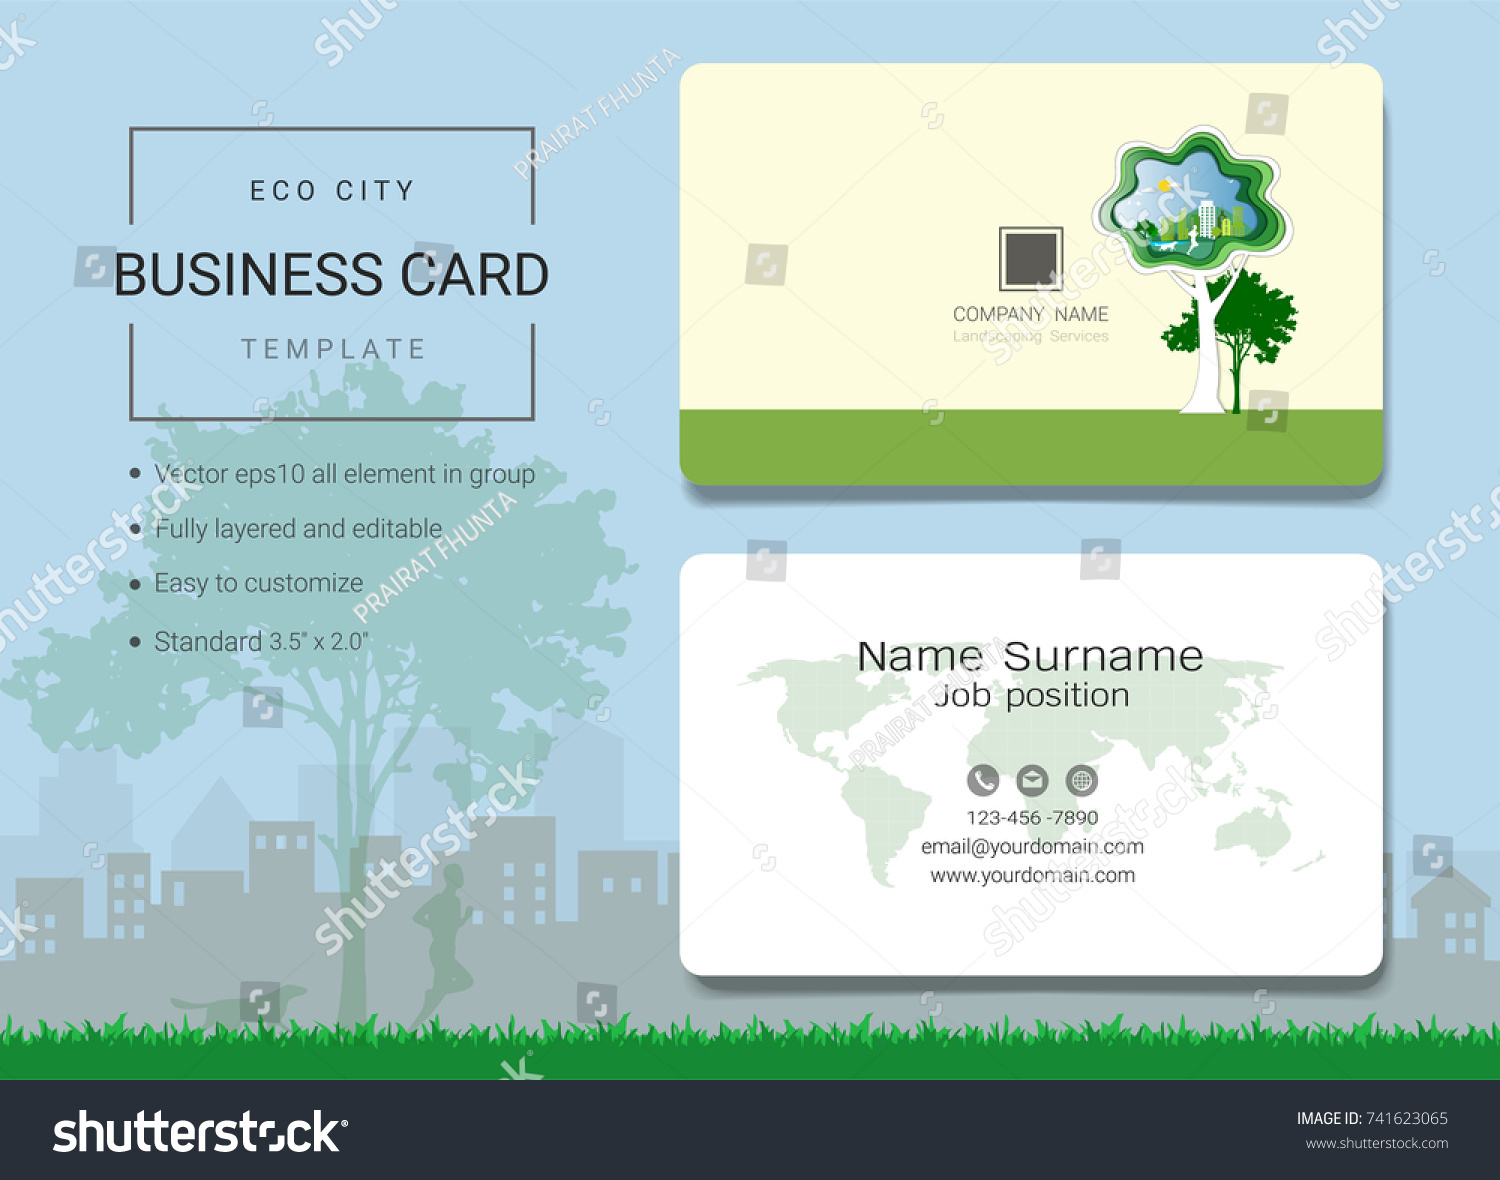 Eco City Business Card Name Card Stock Vector 741623065 - Shutterstock